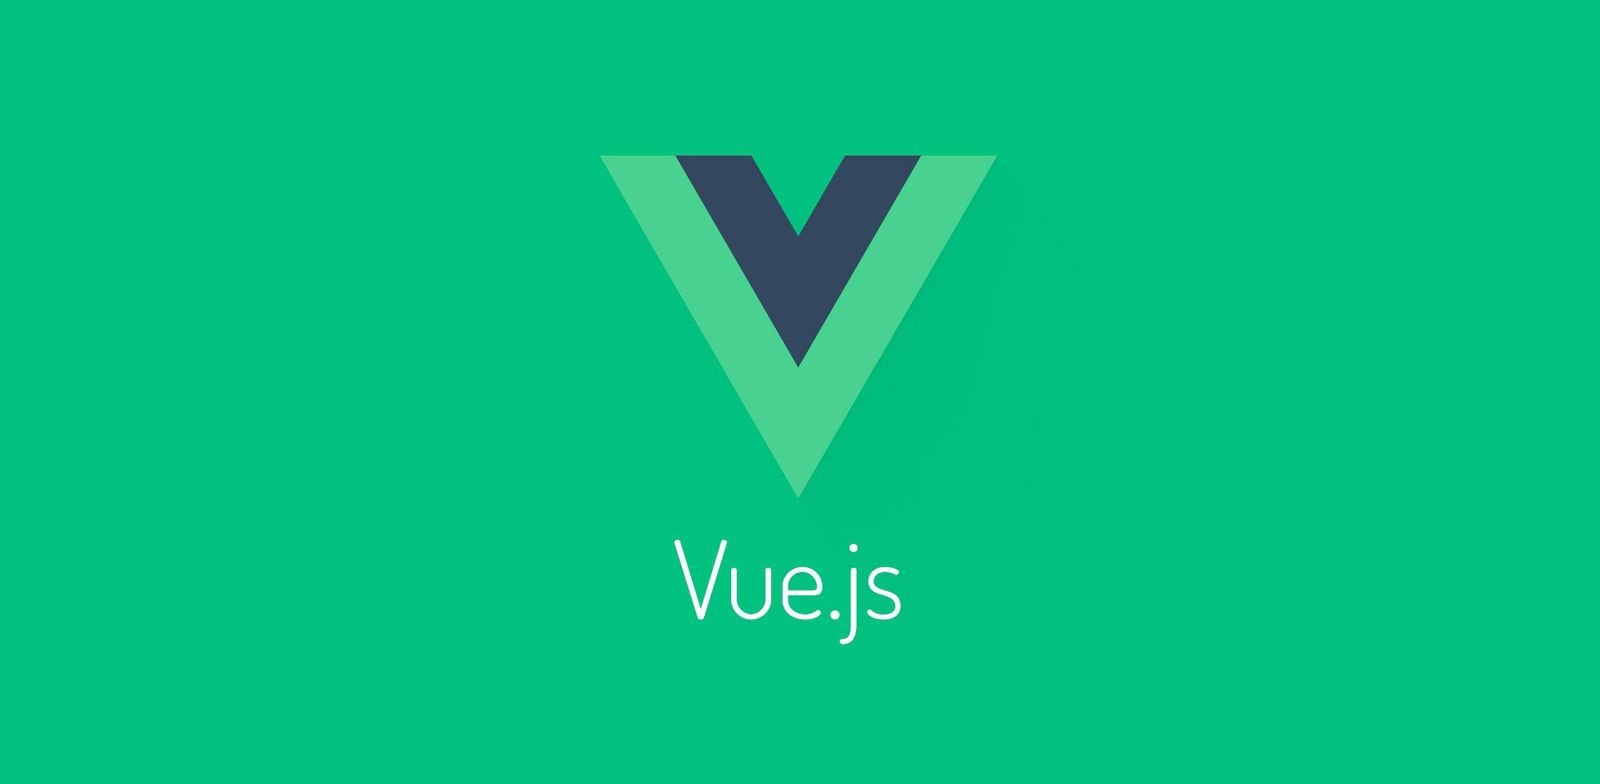 Displaying Modals in a Vue App with the vue-js-modal Library